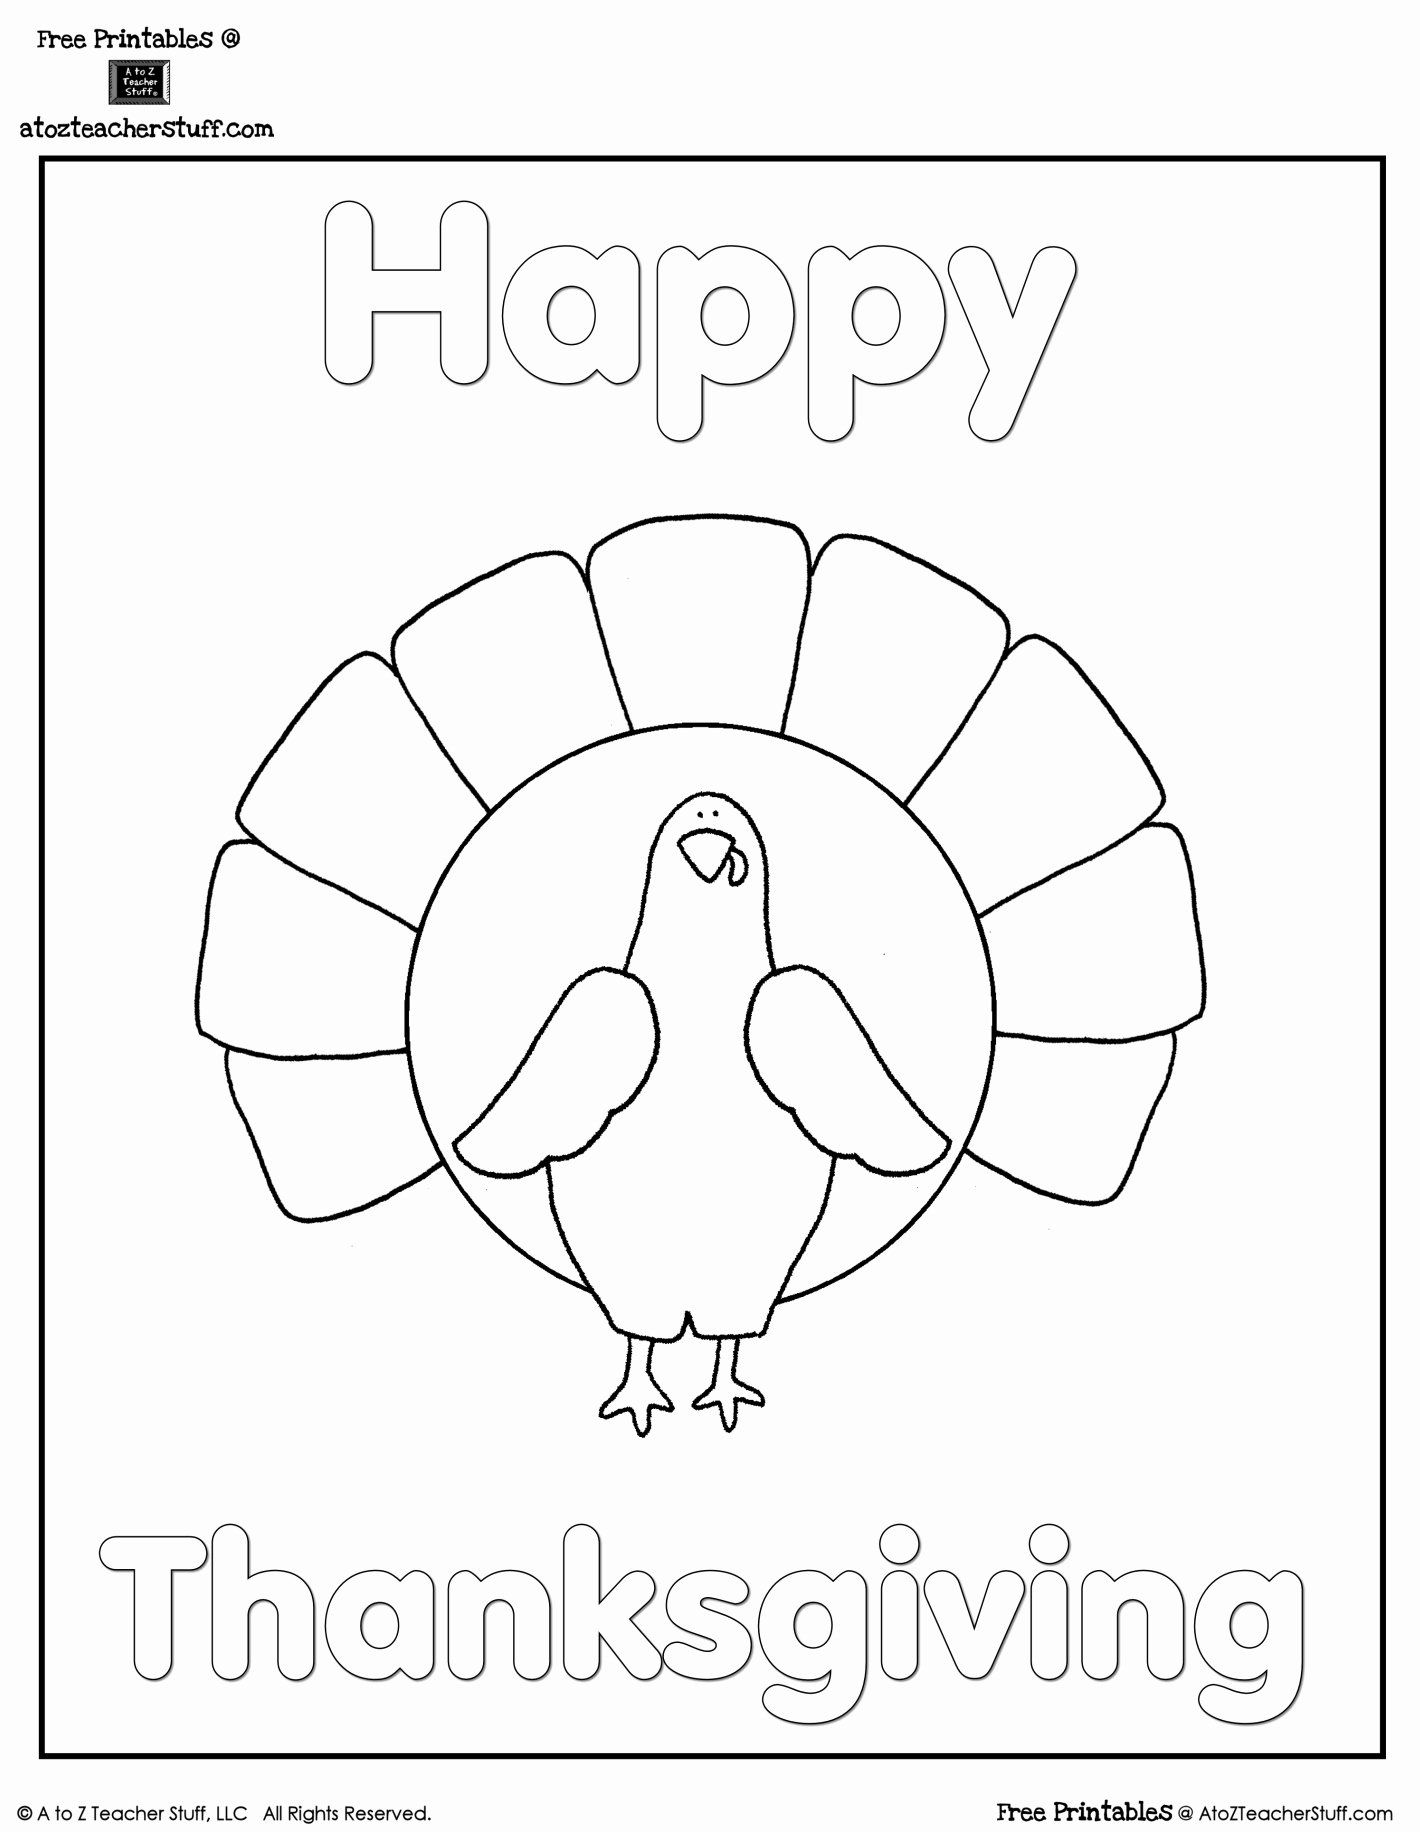 Turkey Body Coloring Page Fresh Coloring Books Astonishing Free Printable Turkeypl Thanksgiving Coloring Pages Turkey Coloring Pages Thanksgiving Coloring Book